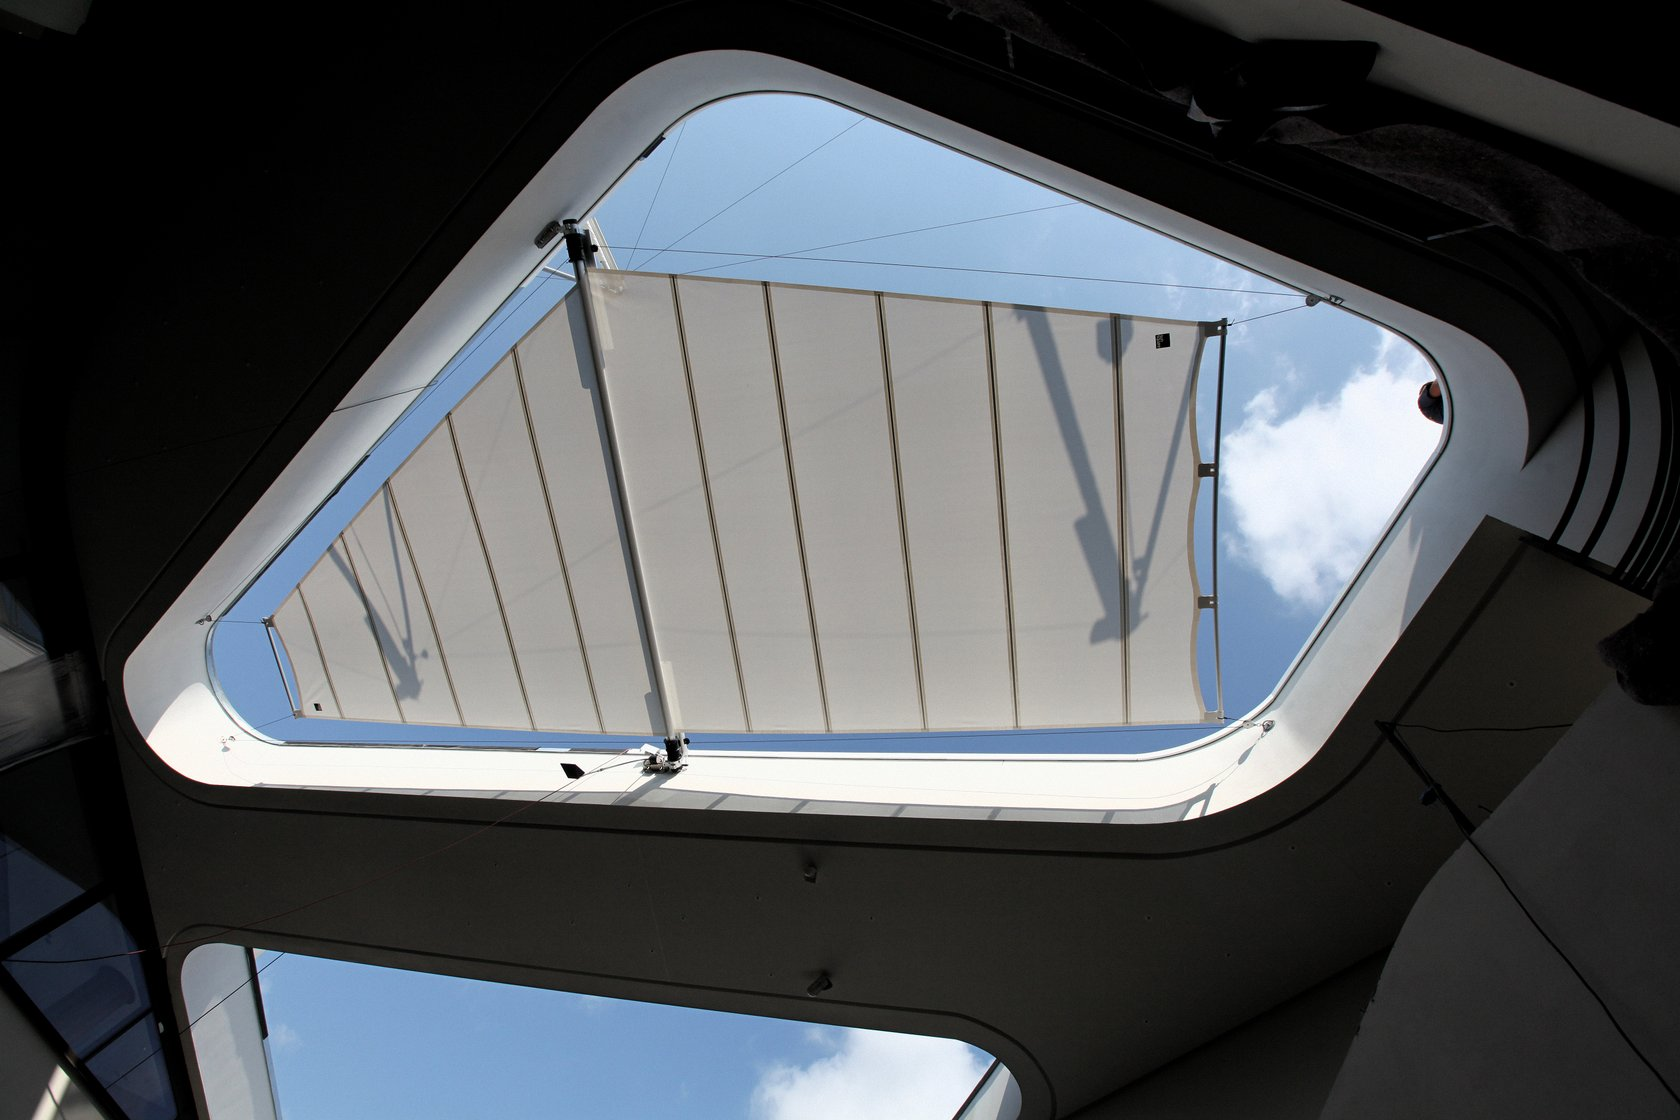 SunSquare - extraordinary sunsail systems for extraordinary needs.